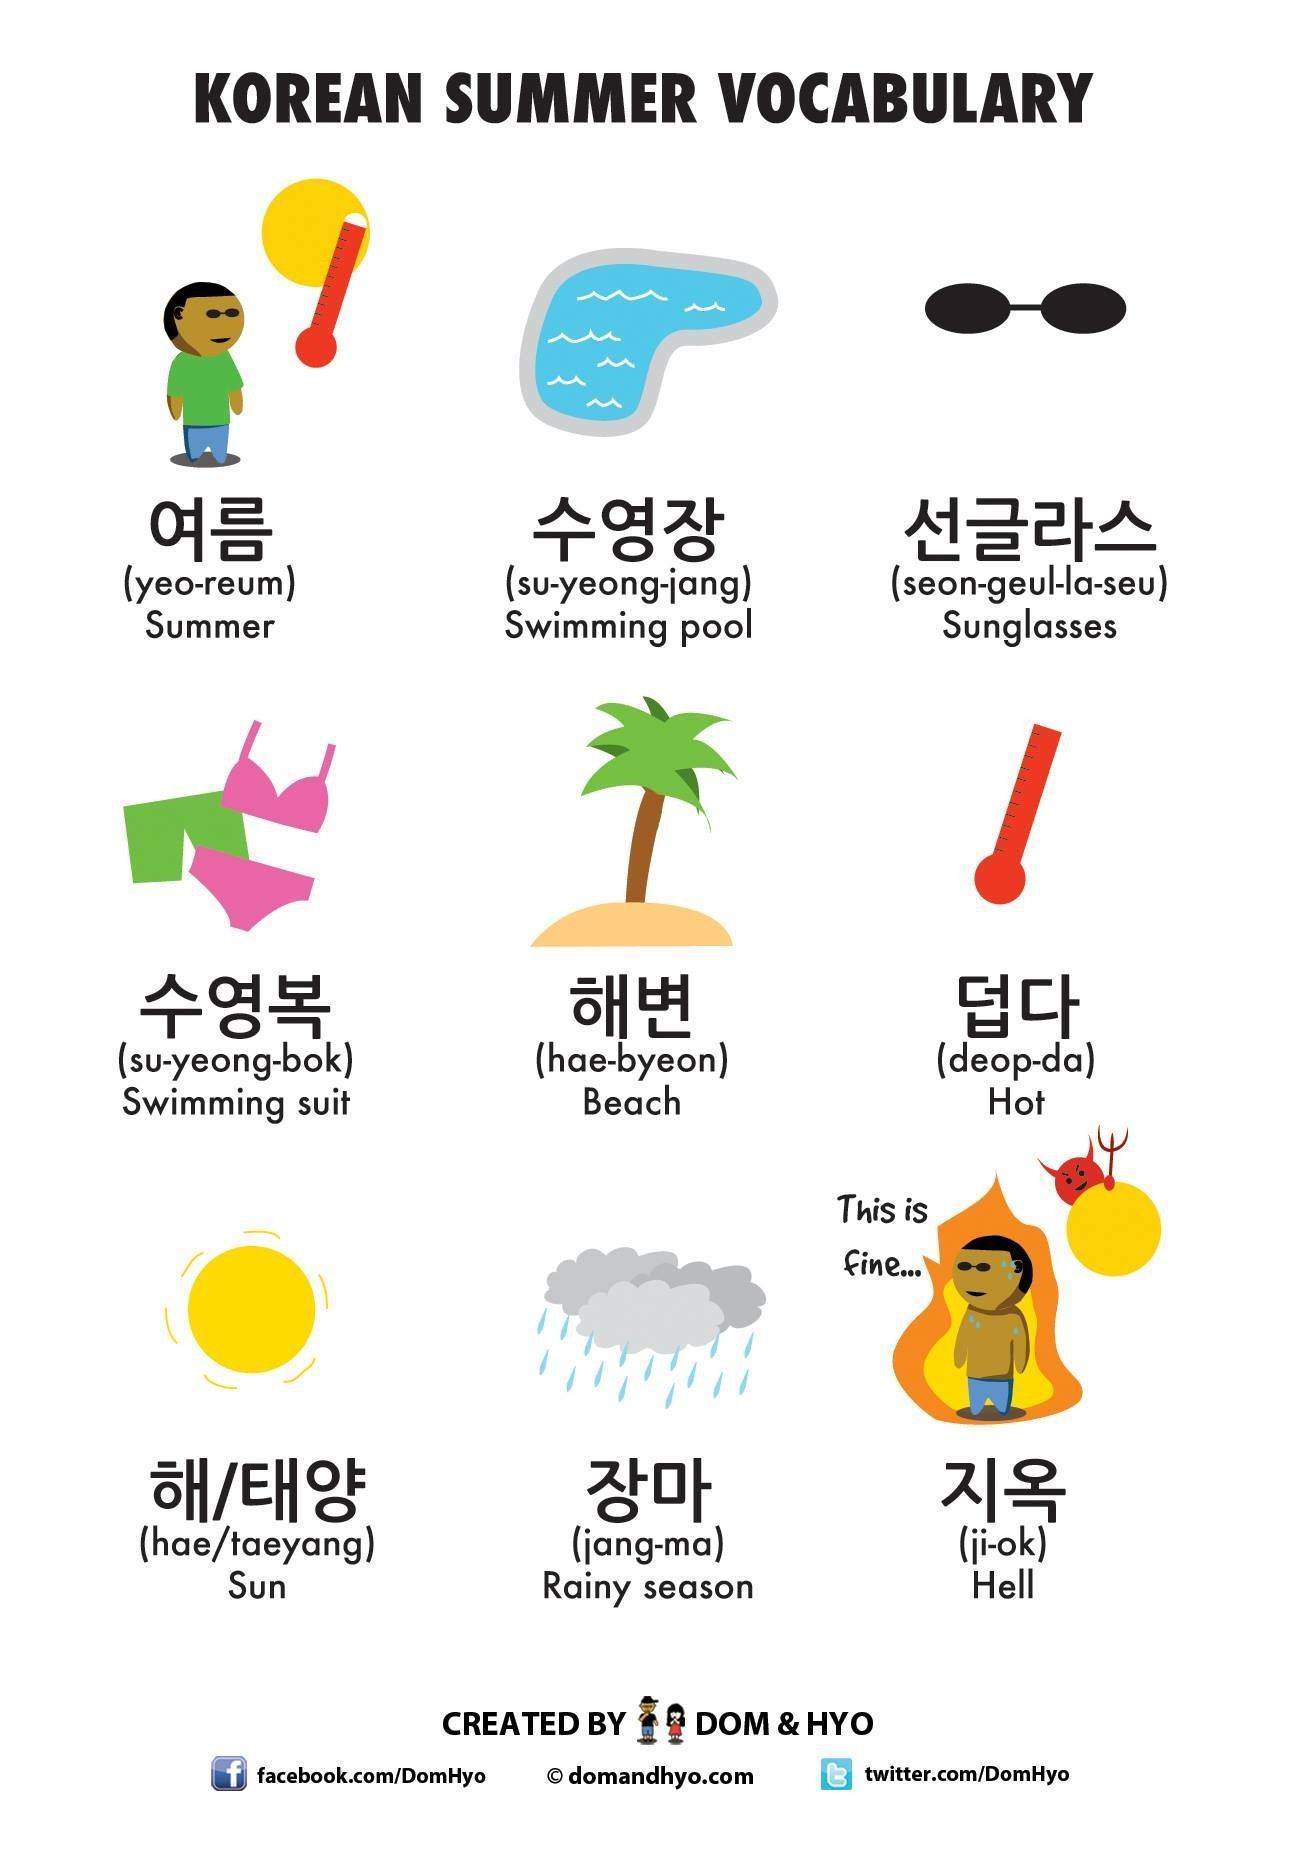 Korean Summer Vocabulary